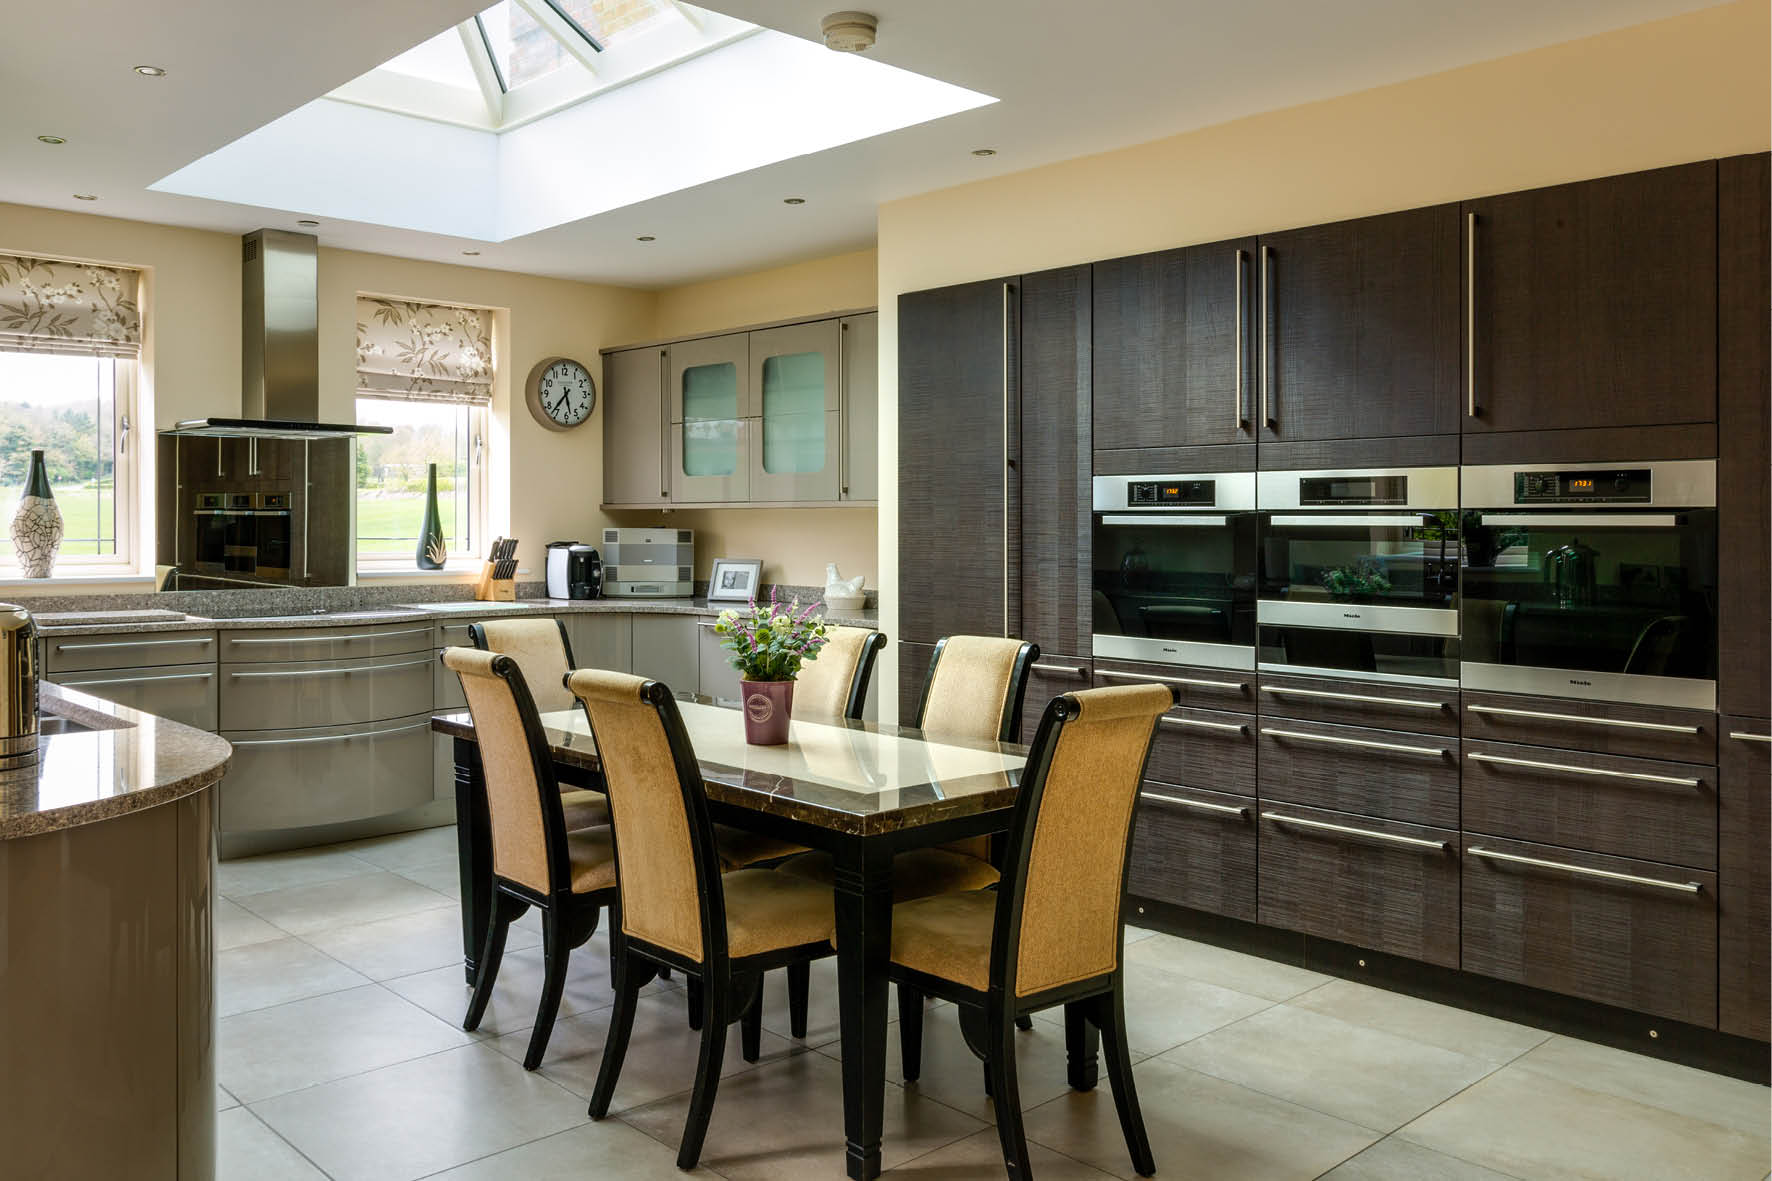 orchard_homes_41.jpg